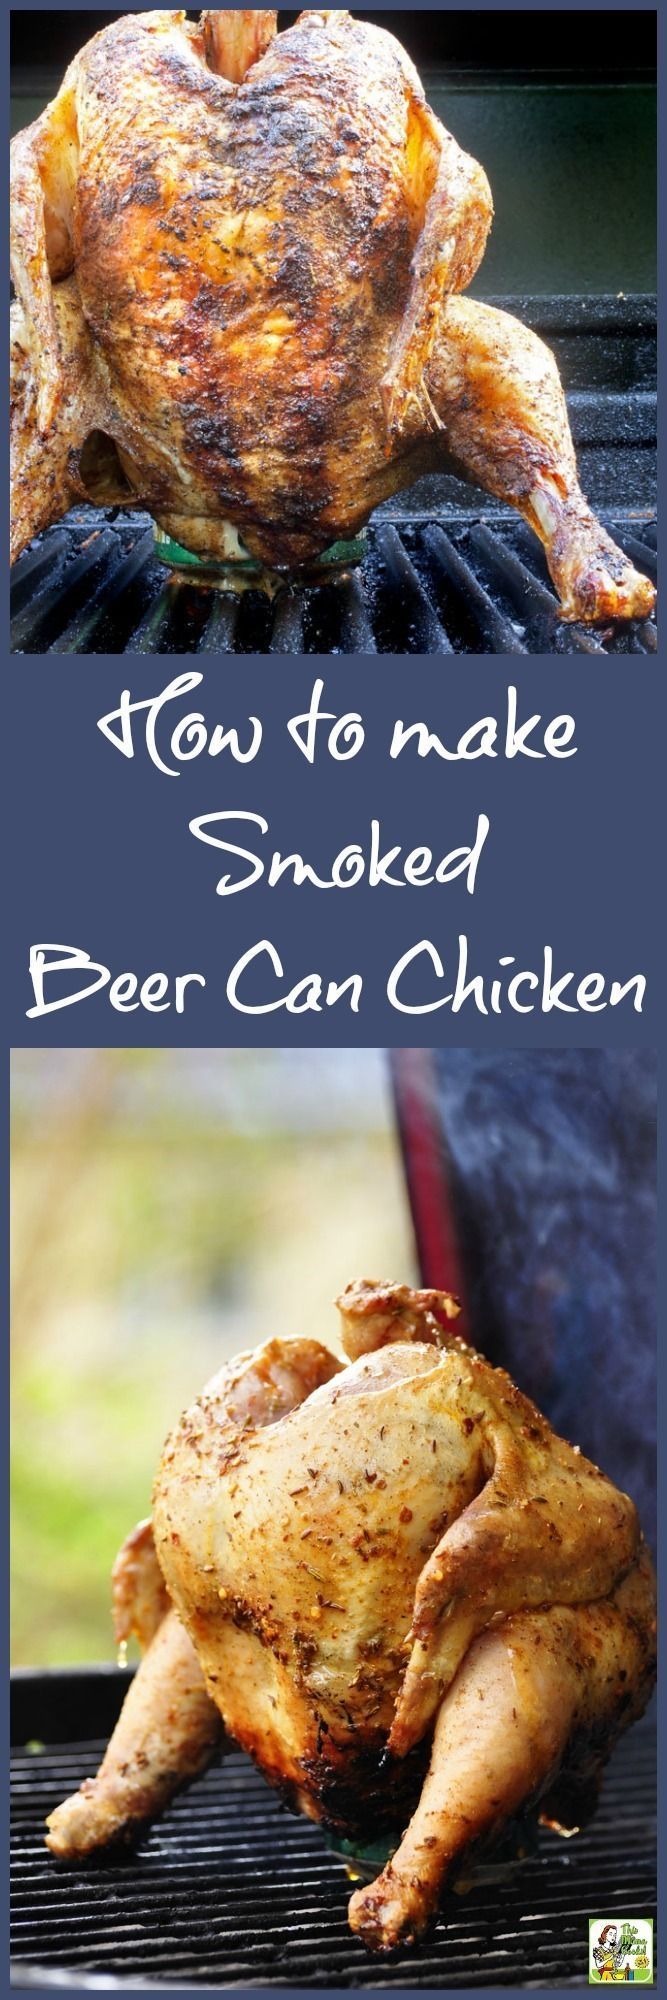 Making Smoked Beer Can Chicken Is Easier Than You Think If